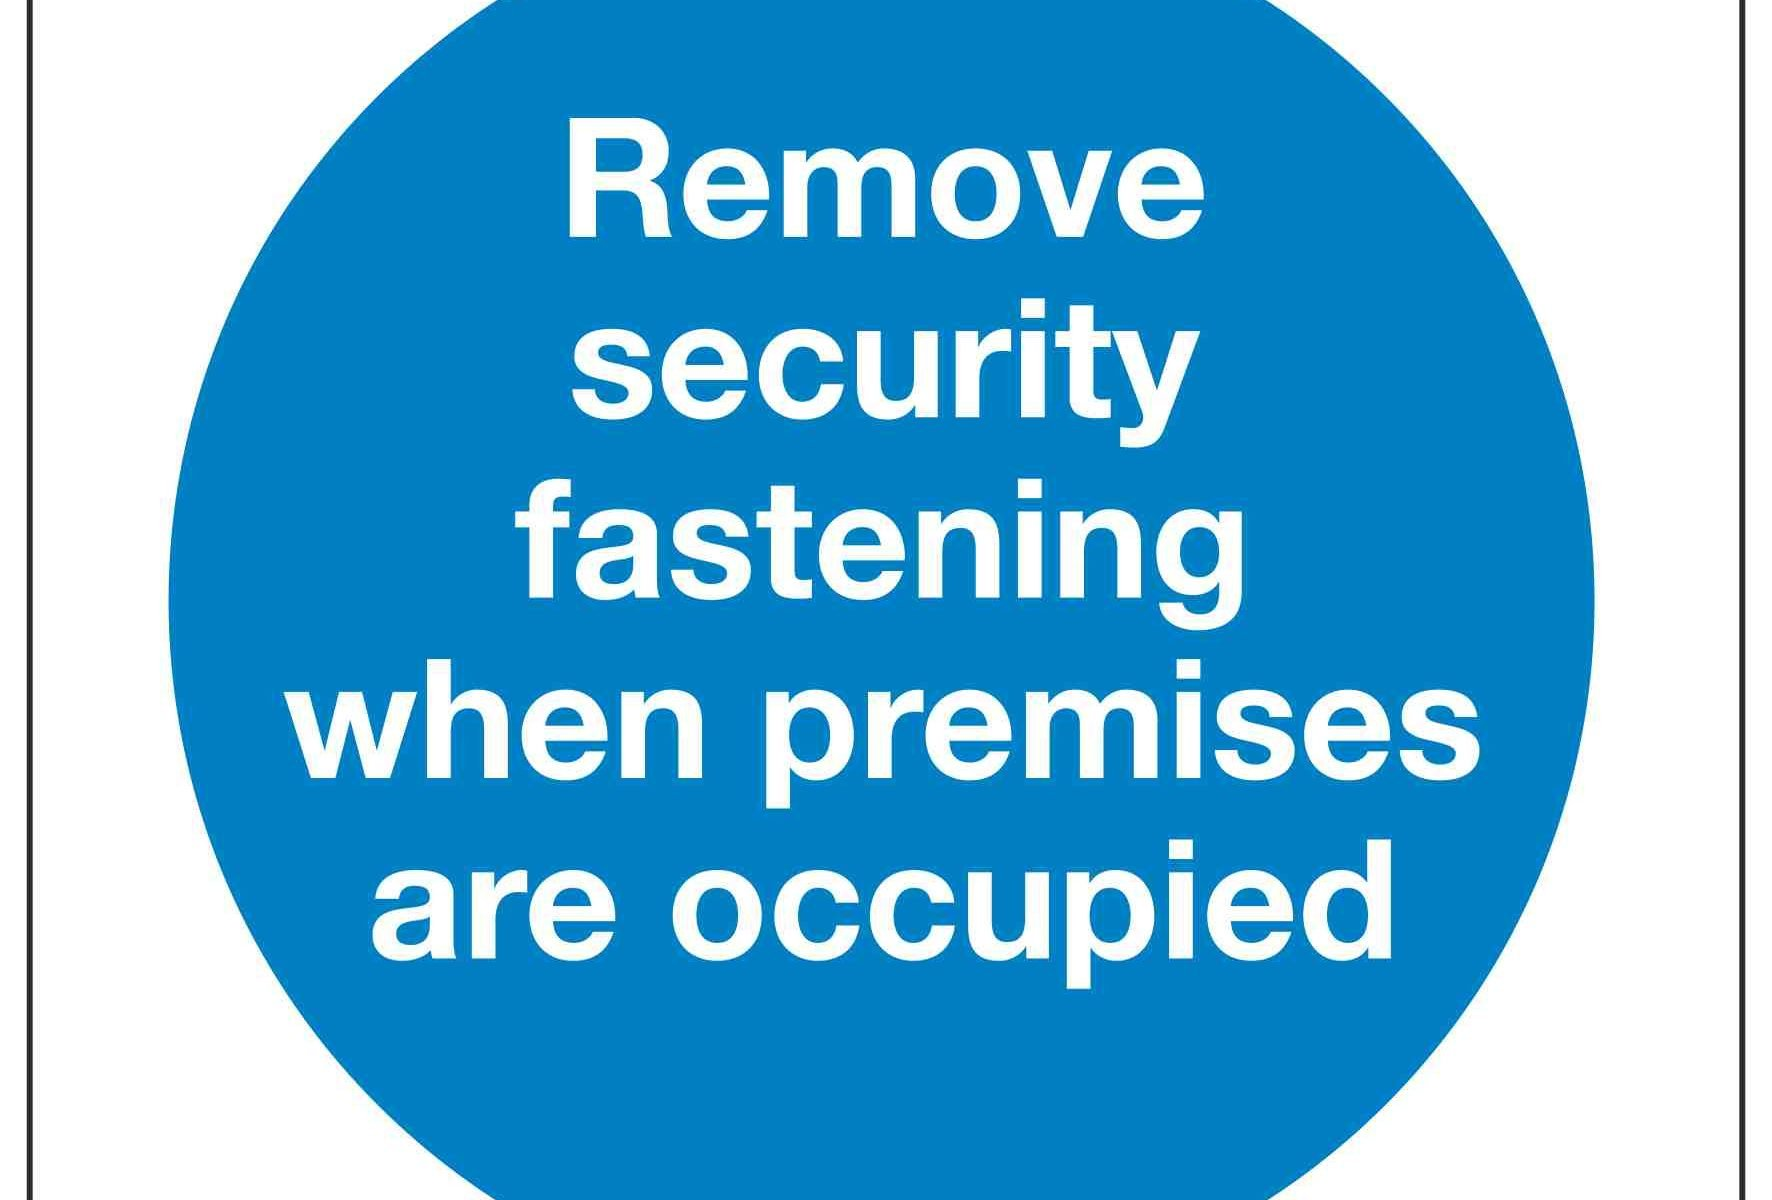 Remove security fastening when premises are occupied